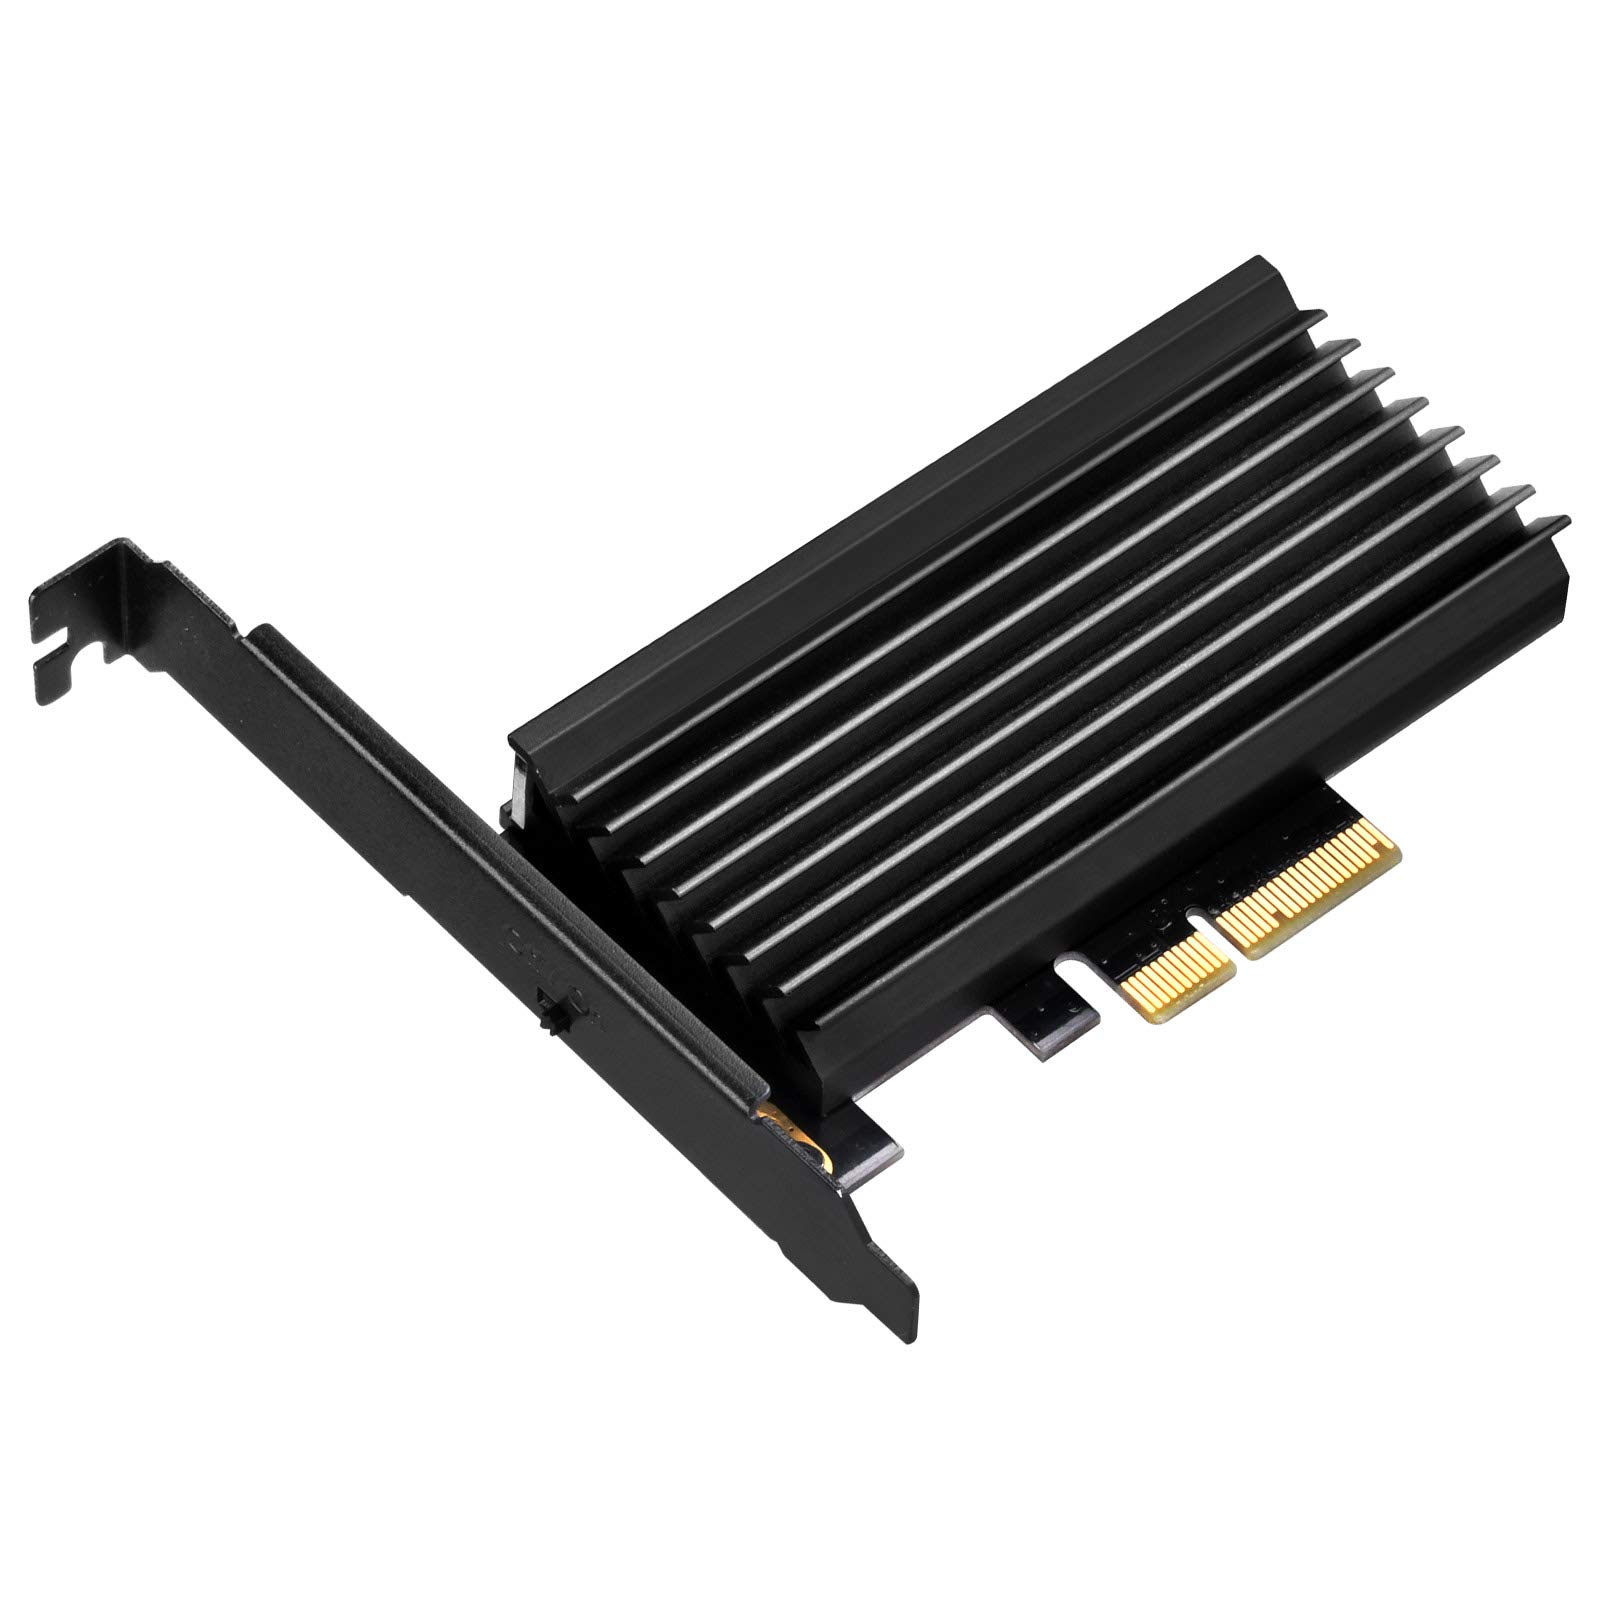 SilverStone Technology M.2 M Key PCIe NVMe Adapter to PCIe X4 with Integrated Heatsink SST-ECM24 by SilverStone Technology